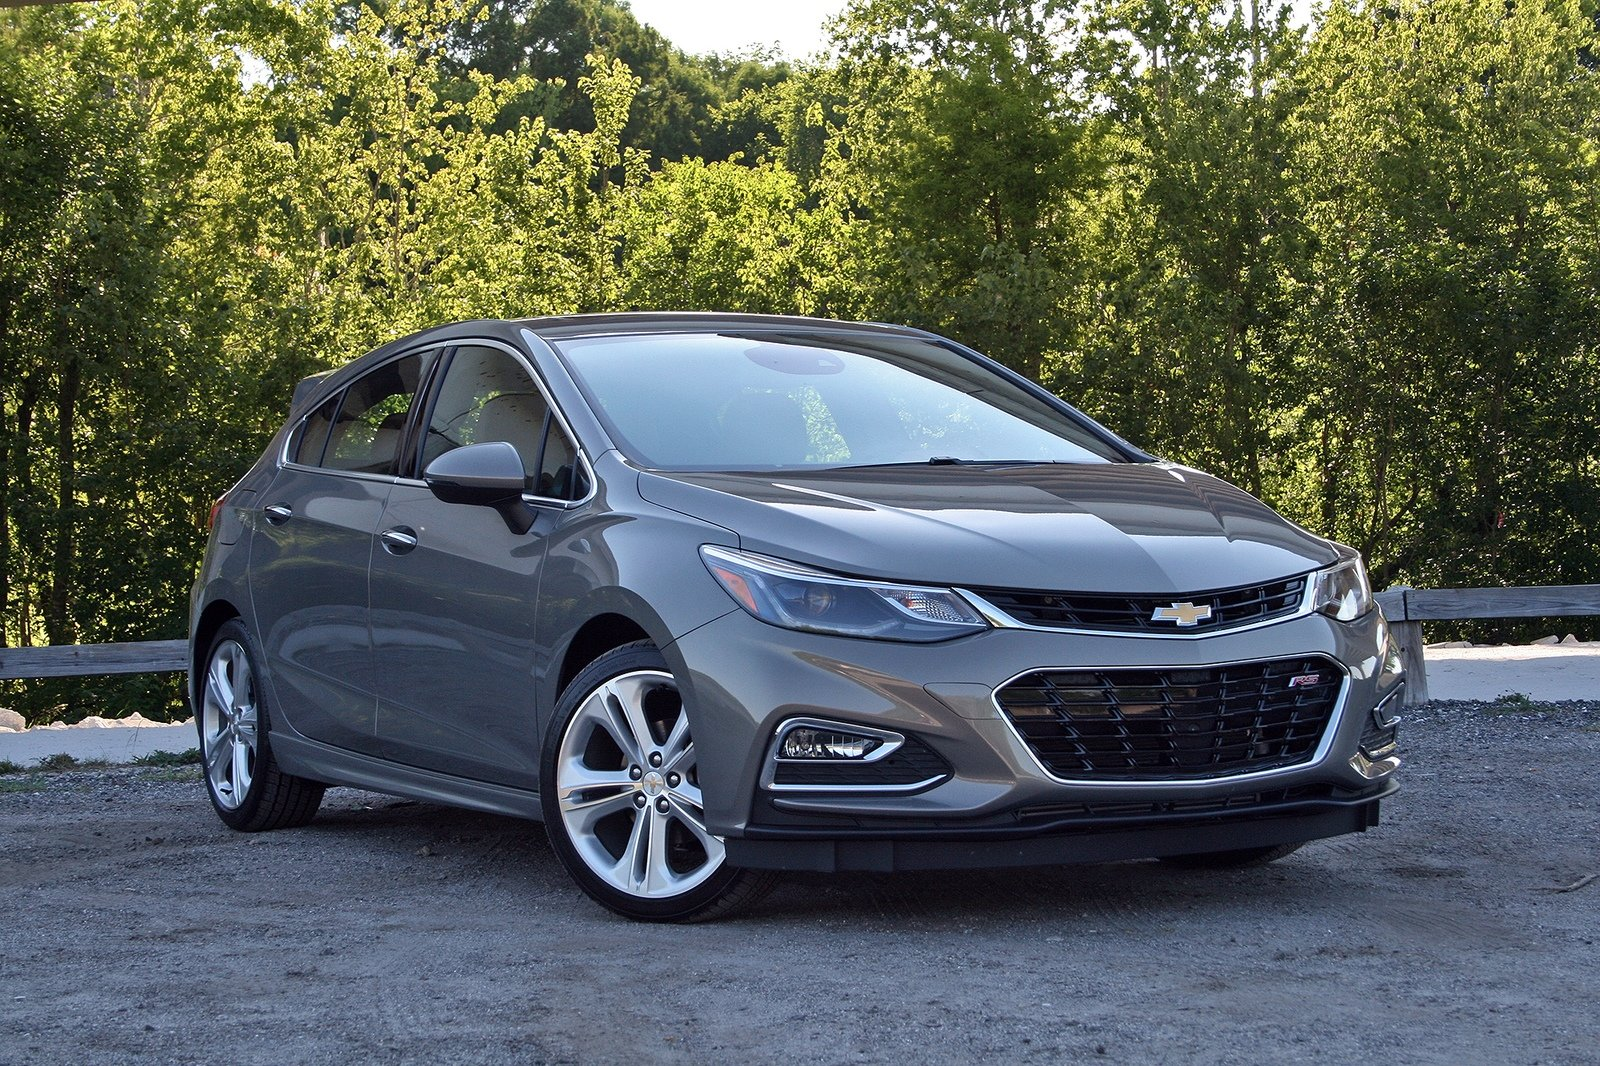 2017 chevrolet cruze hatchback driven review top speed. Black Bedroom Furniture Sets. Home Design Ideas